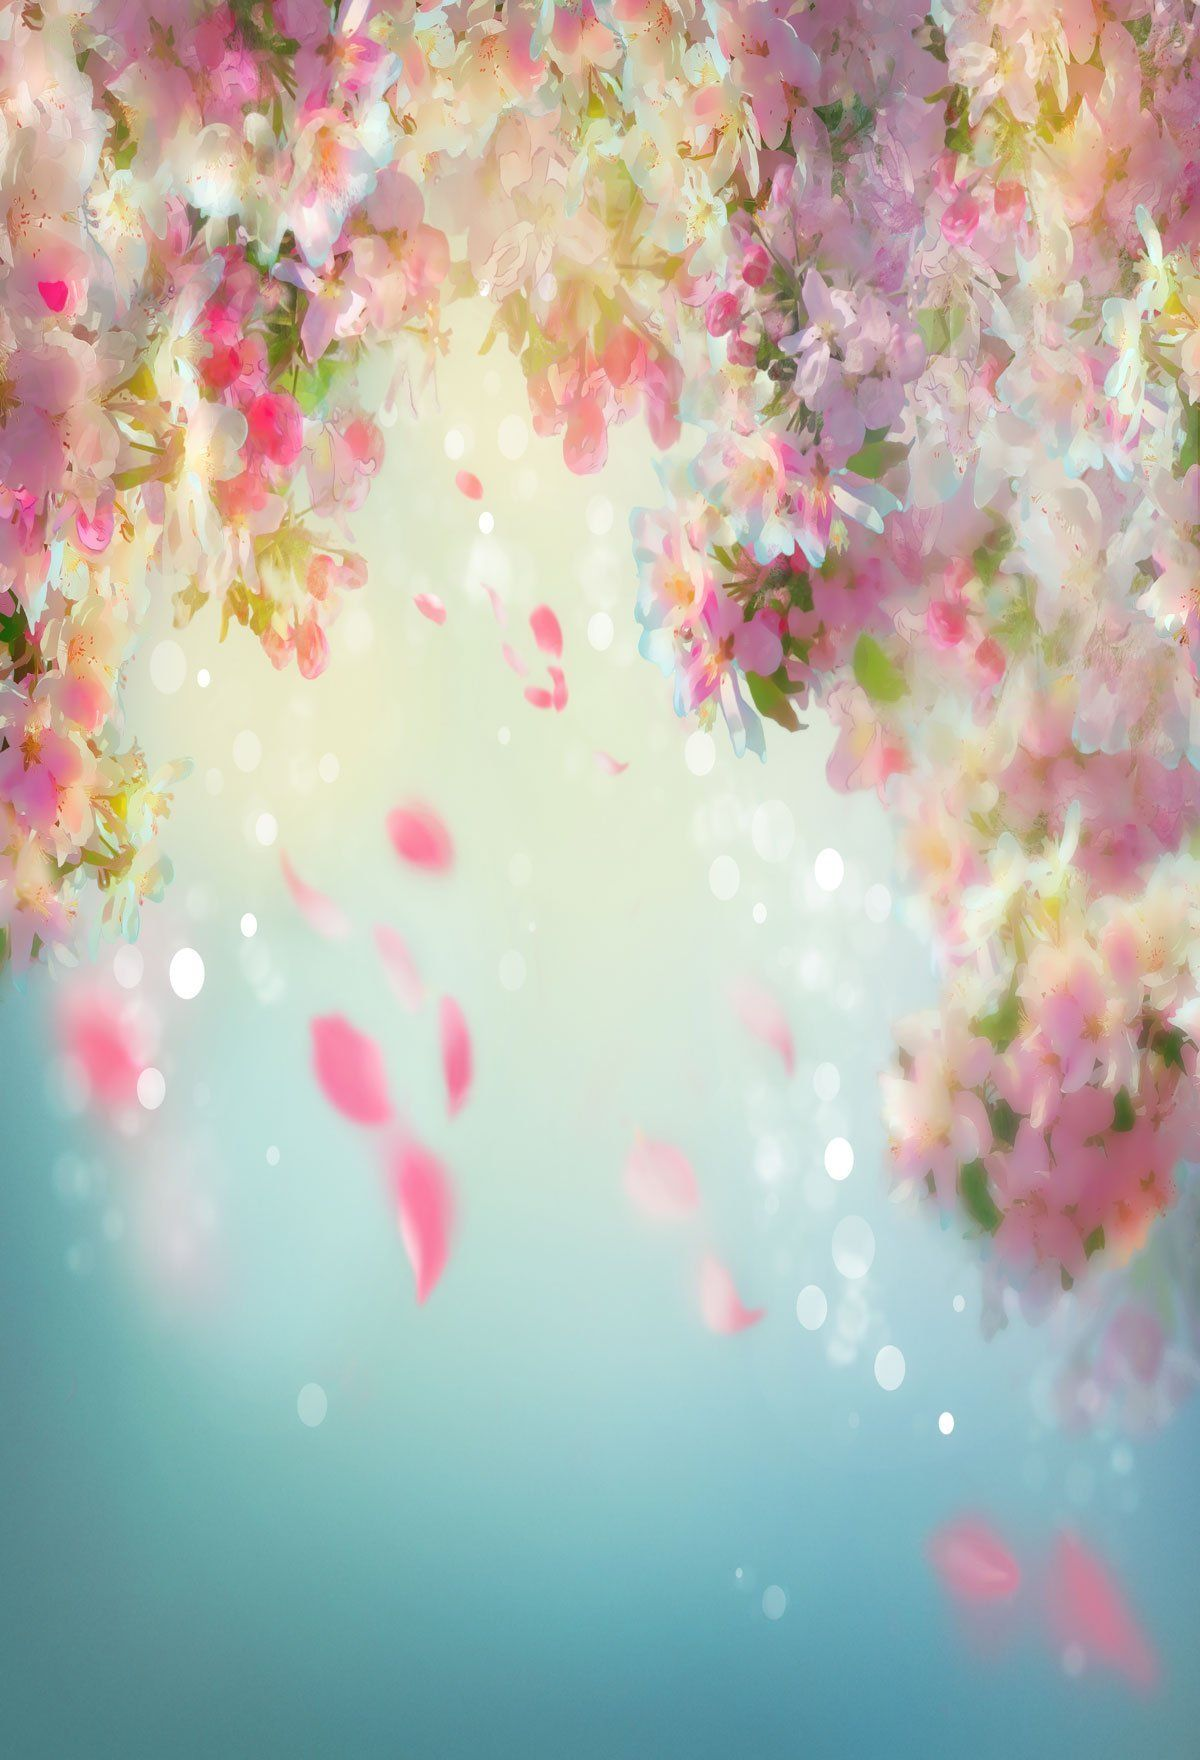 Fantasy Flower Backdrop For Events Photography Background - 14'W*20'H(4.2*6m)